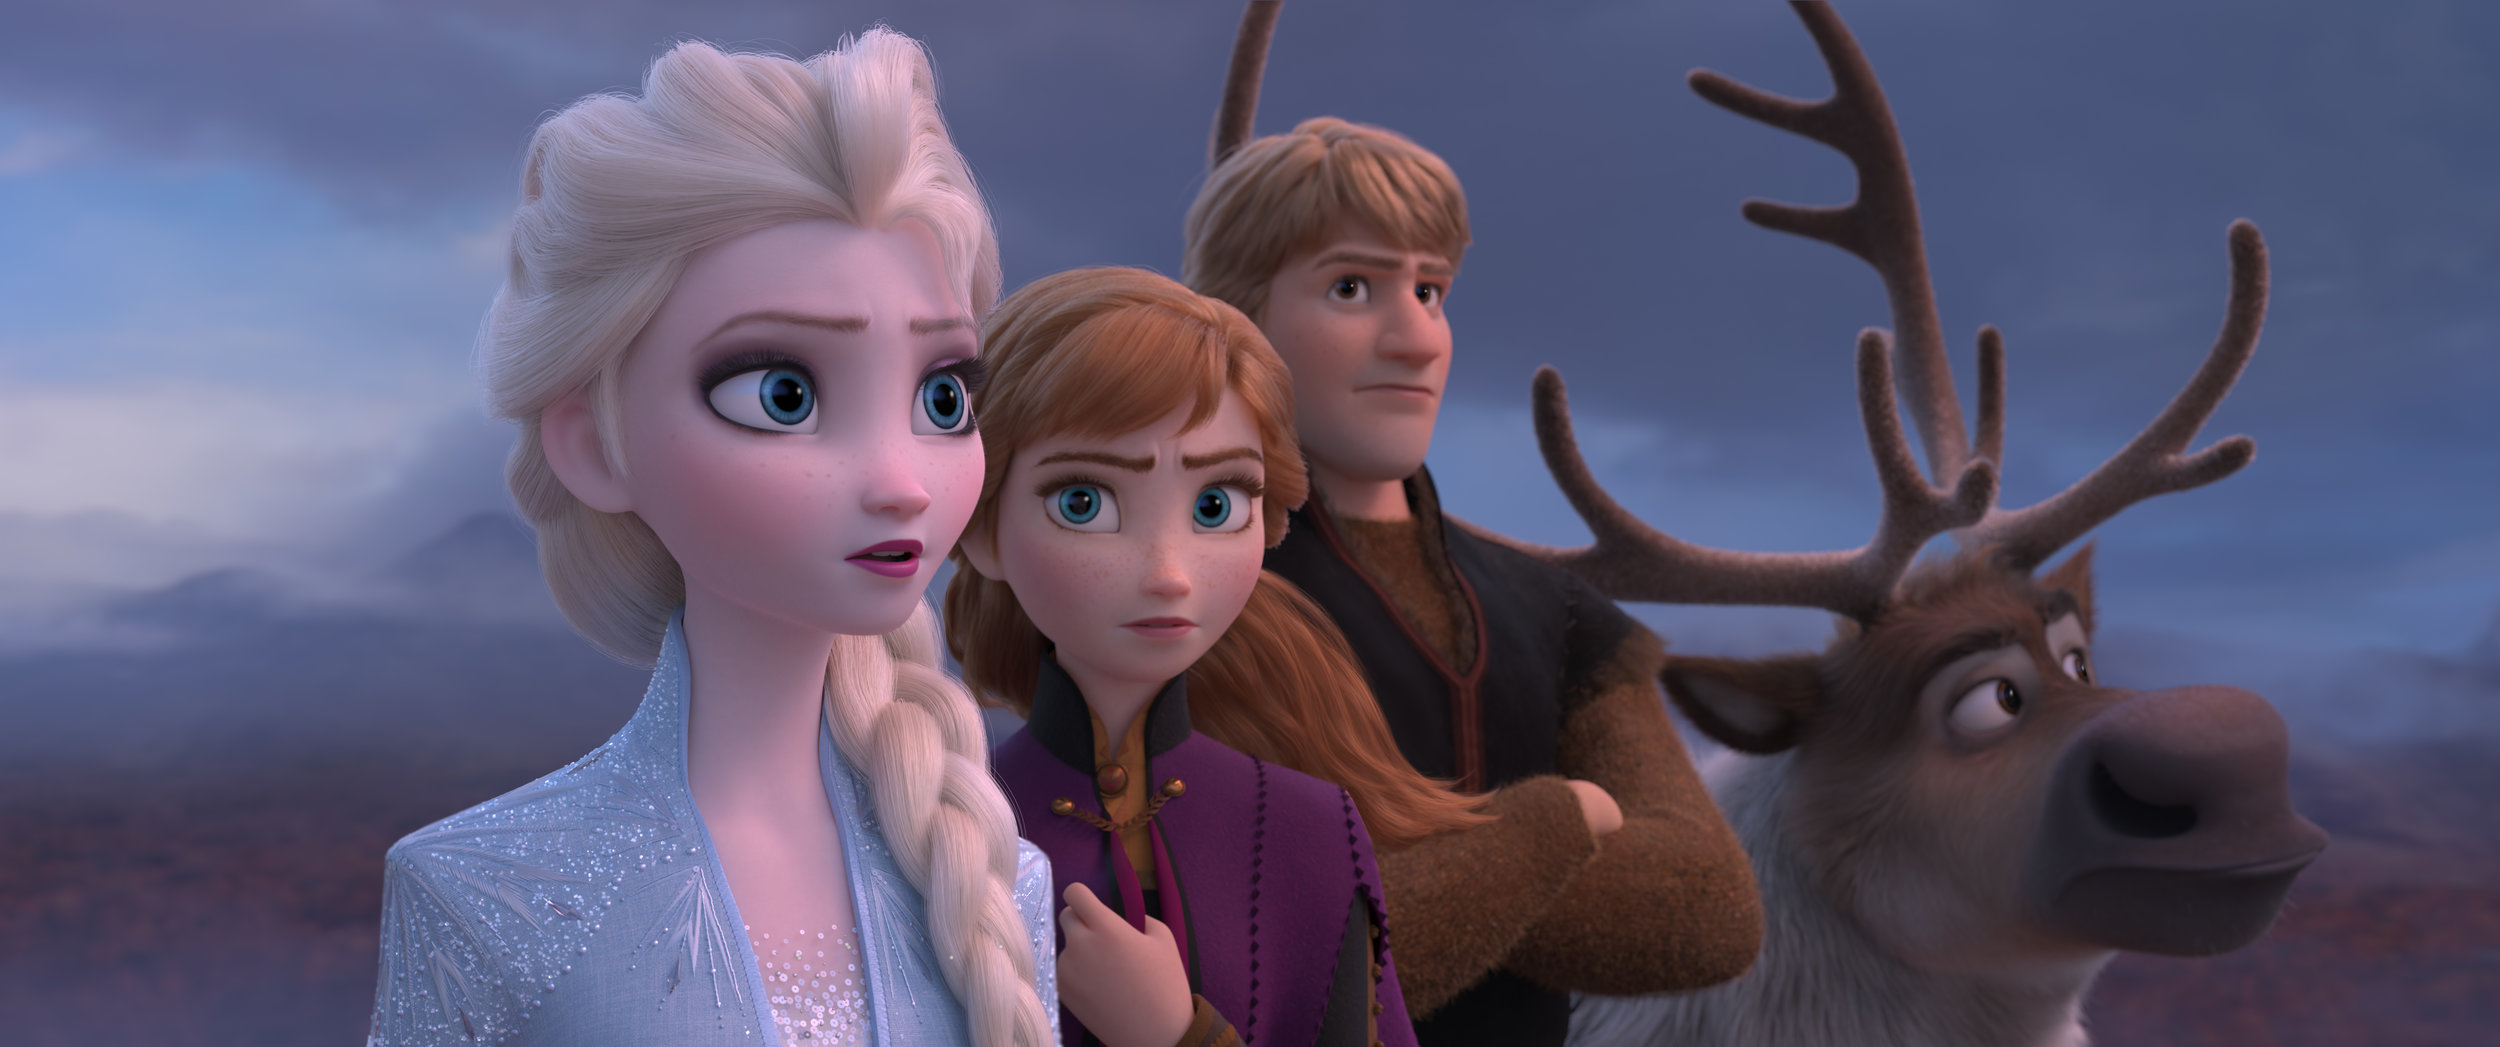 Frozen2_ONLINE-USE_trailer1_FINAL_formatted.jpg